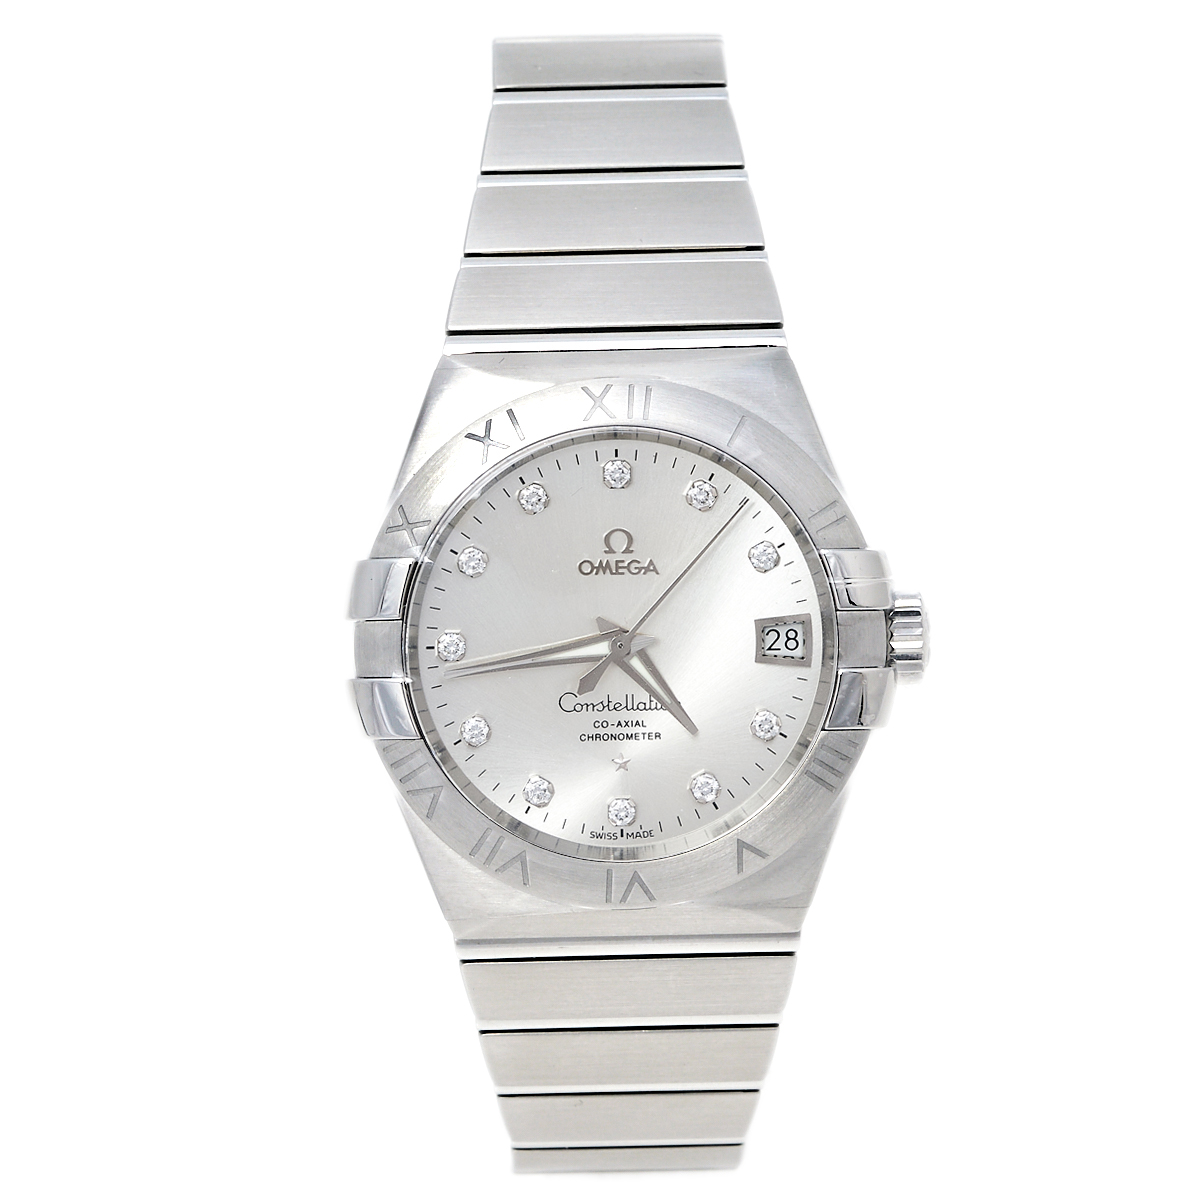 OMEGA SILVER DIAMOND STAINLESS STEEL CONSTELLATION CO-AXIAL 123.10.38.21.52.001 MEN'S WRISTWATCH 38 MM